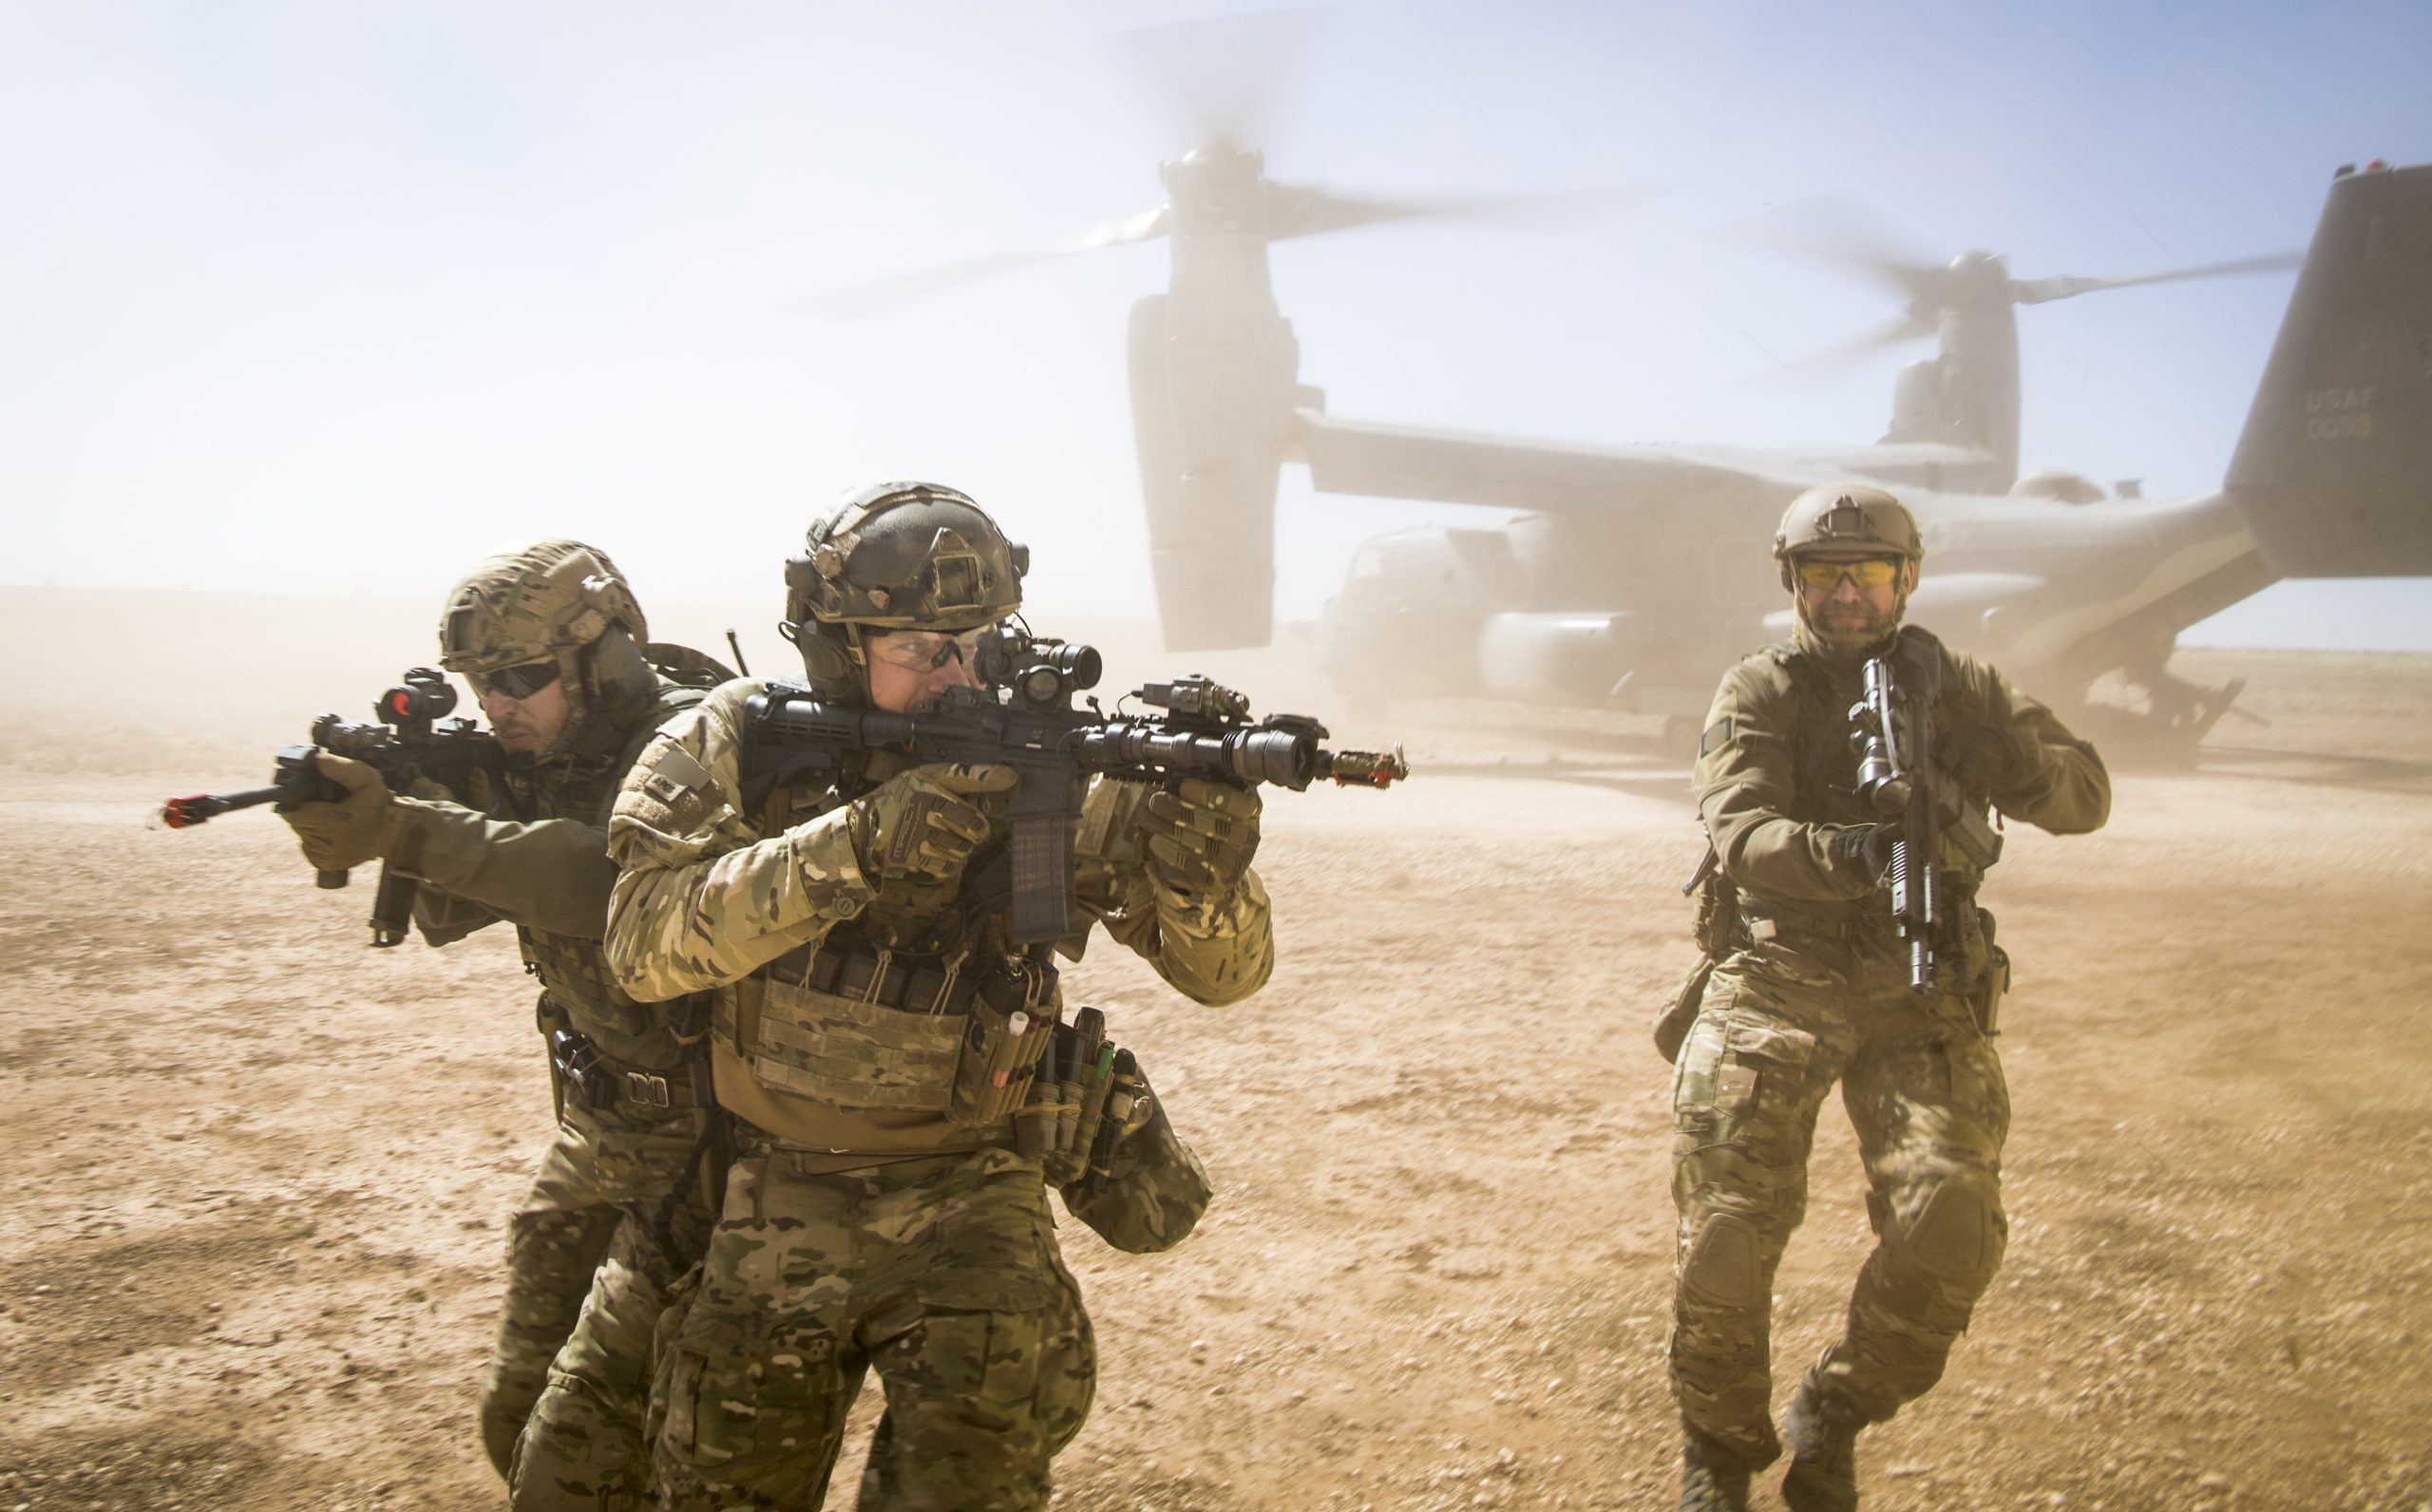 A joint special forces team move together out of a U.S. Air Force CV-22 Osprey Feb. 26, 2018, at Melrose Training Range, New Mexico. At Emerald Warrior, the largest joint and combined special operations exercise, U.S. Special Operations Command forces train to respond to various threats across the spectrum of conflict. (U.S. Air Force photo/Senior Airman Clayton Cupit)